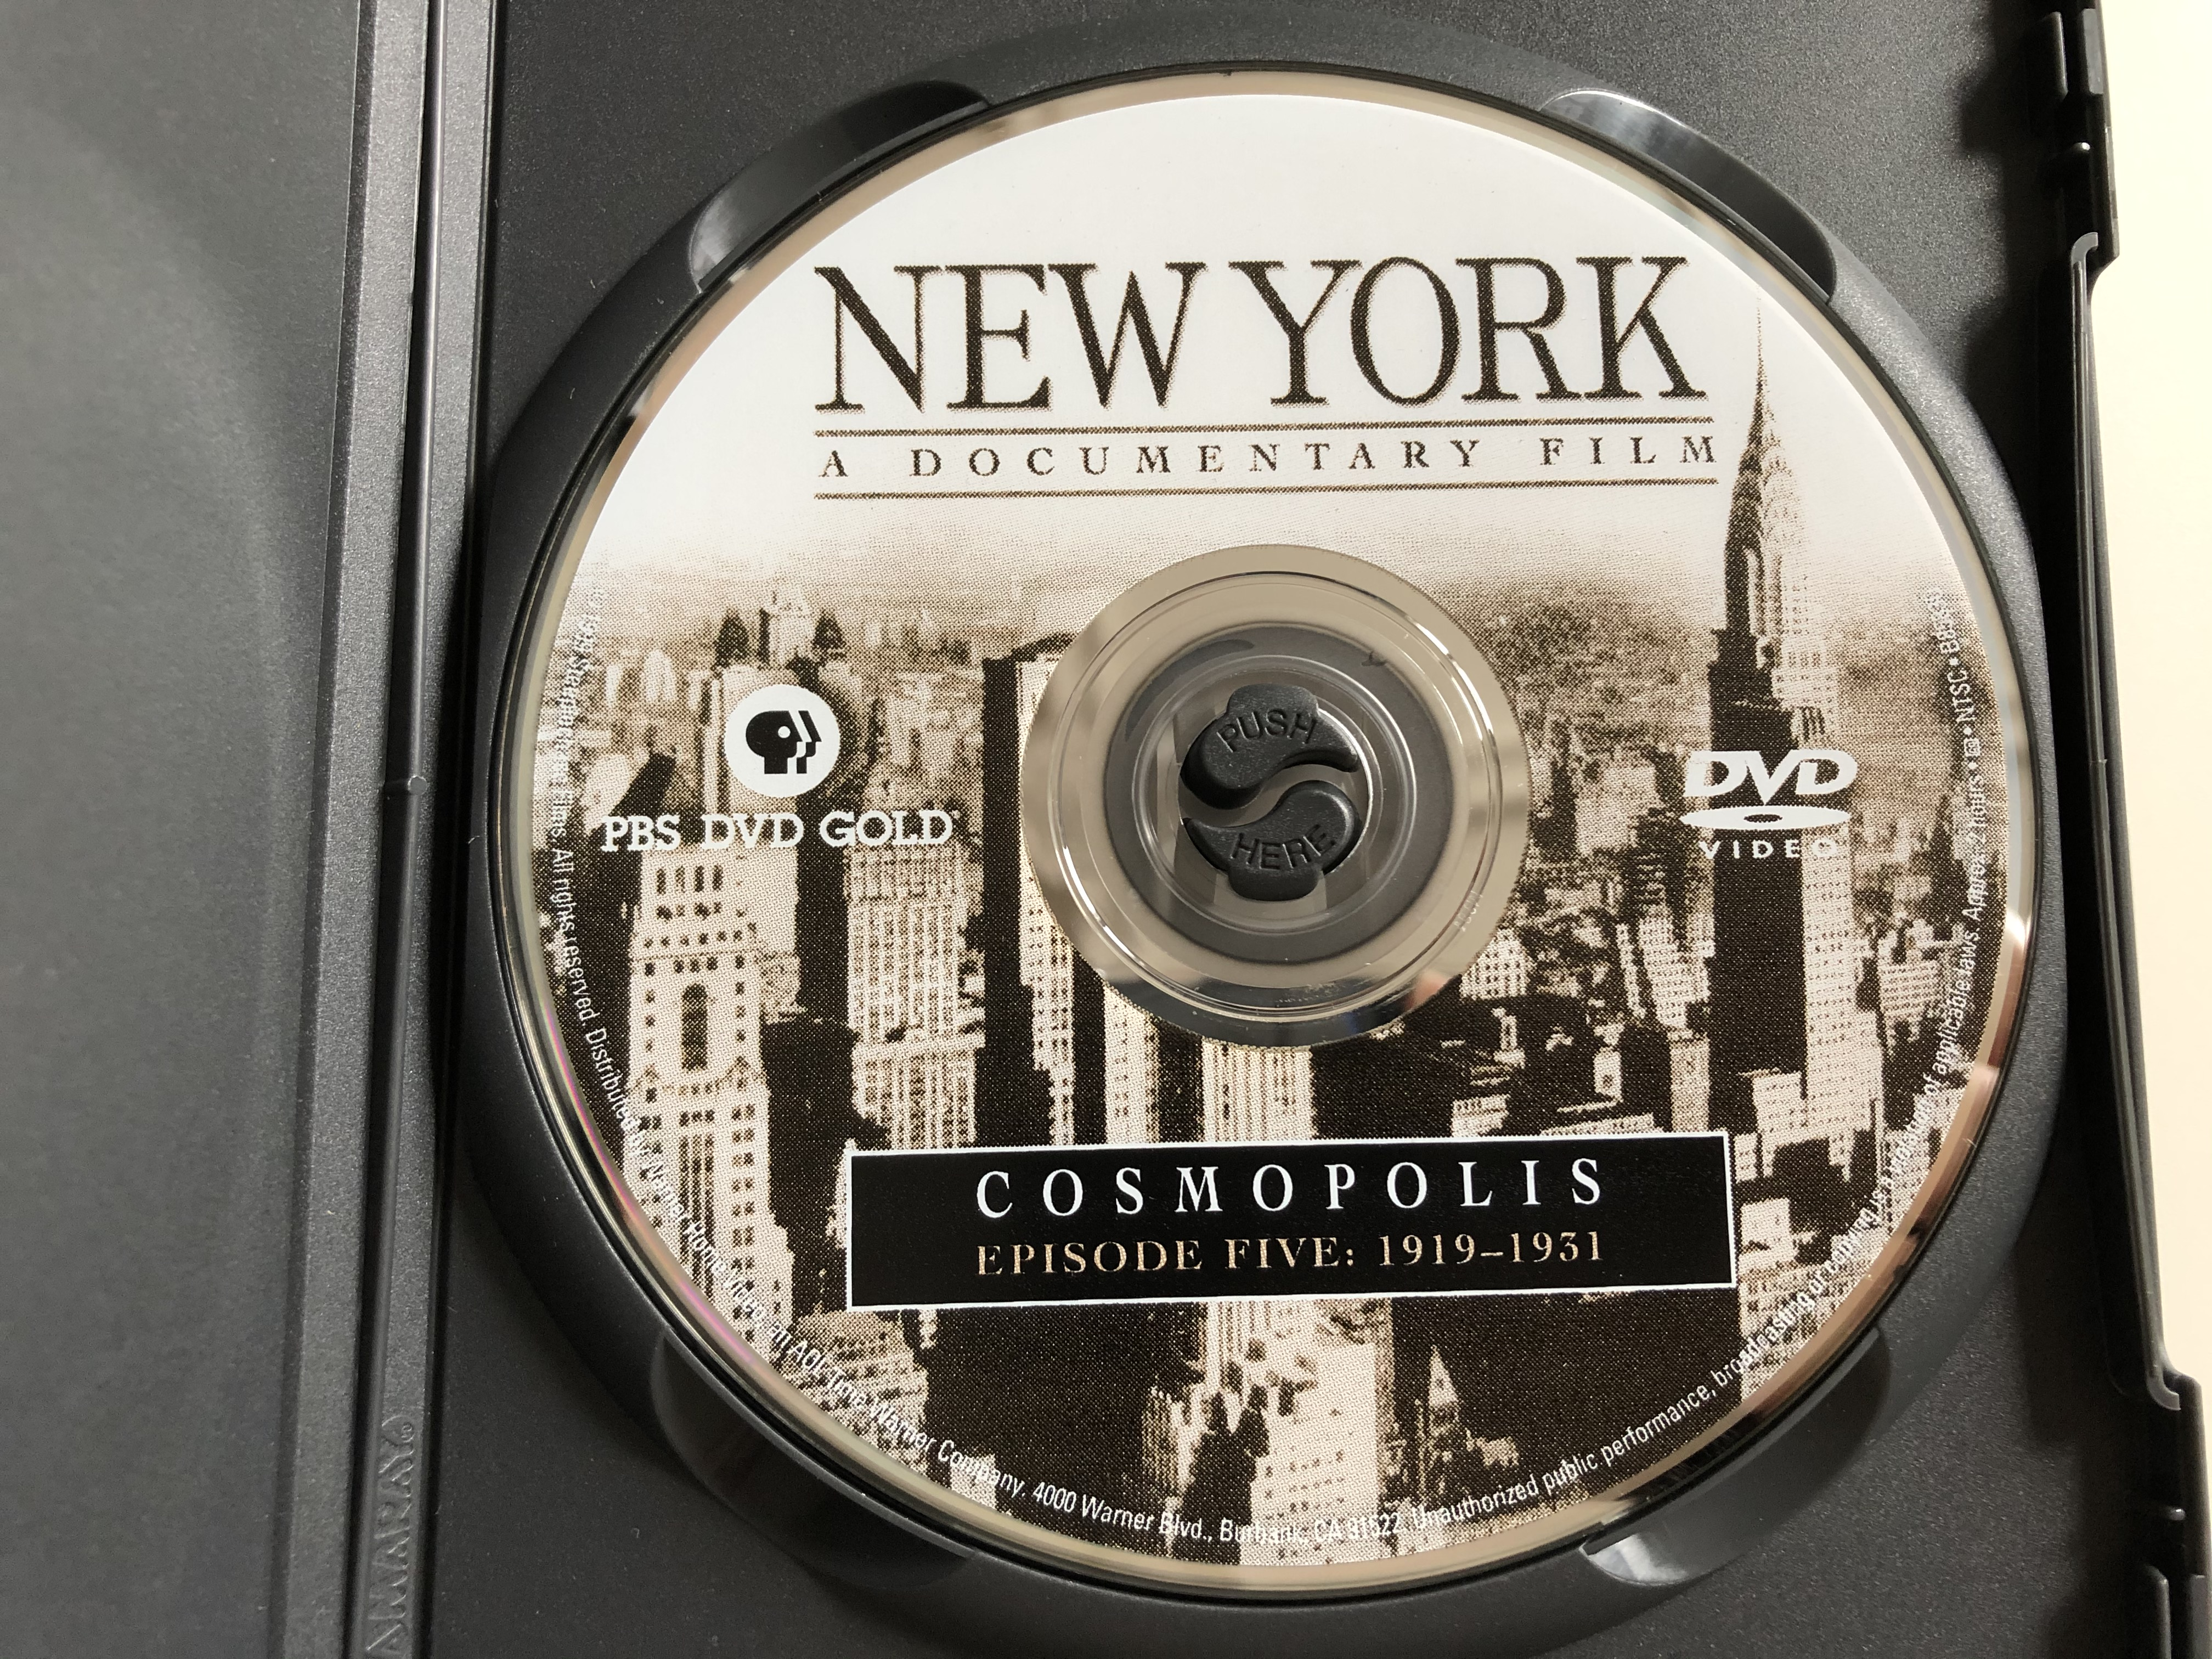 new-york-episode-5-1919-to-1931-cosmopolis-dvd-1999-directed-by-ric-burns-2.jpg